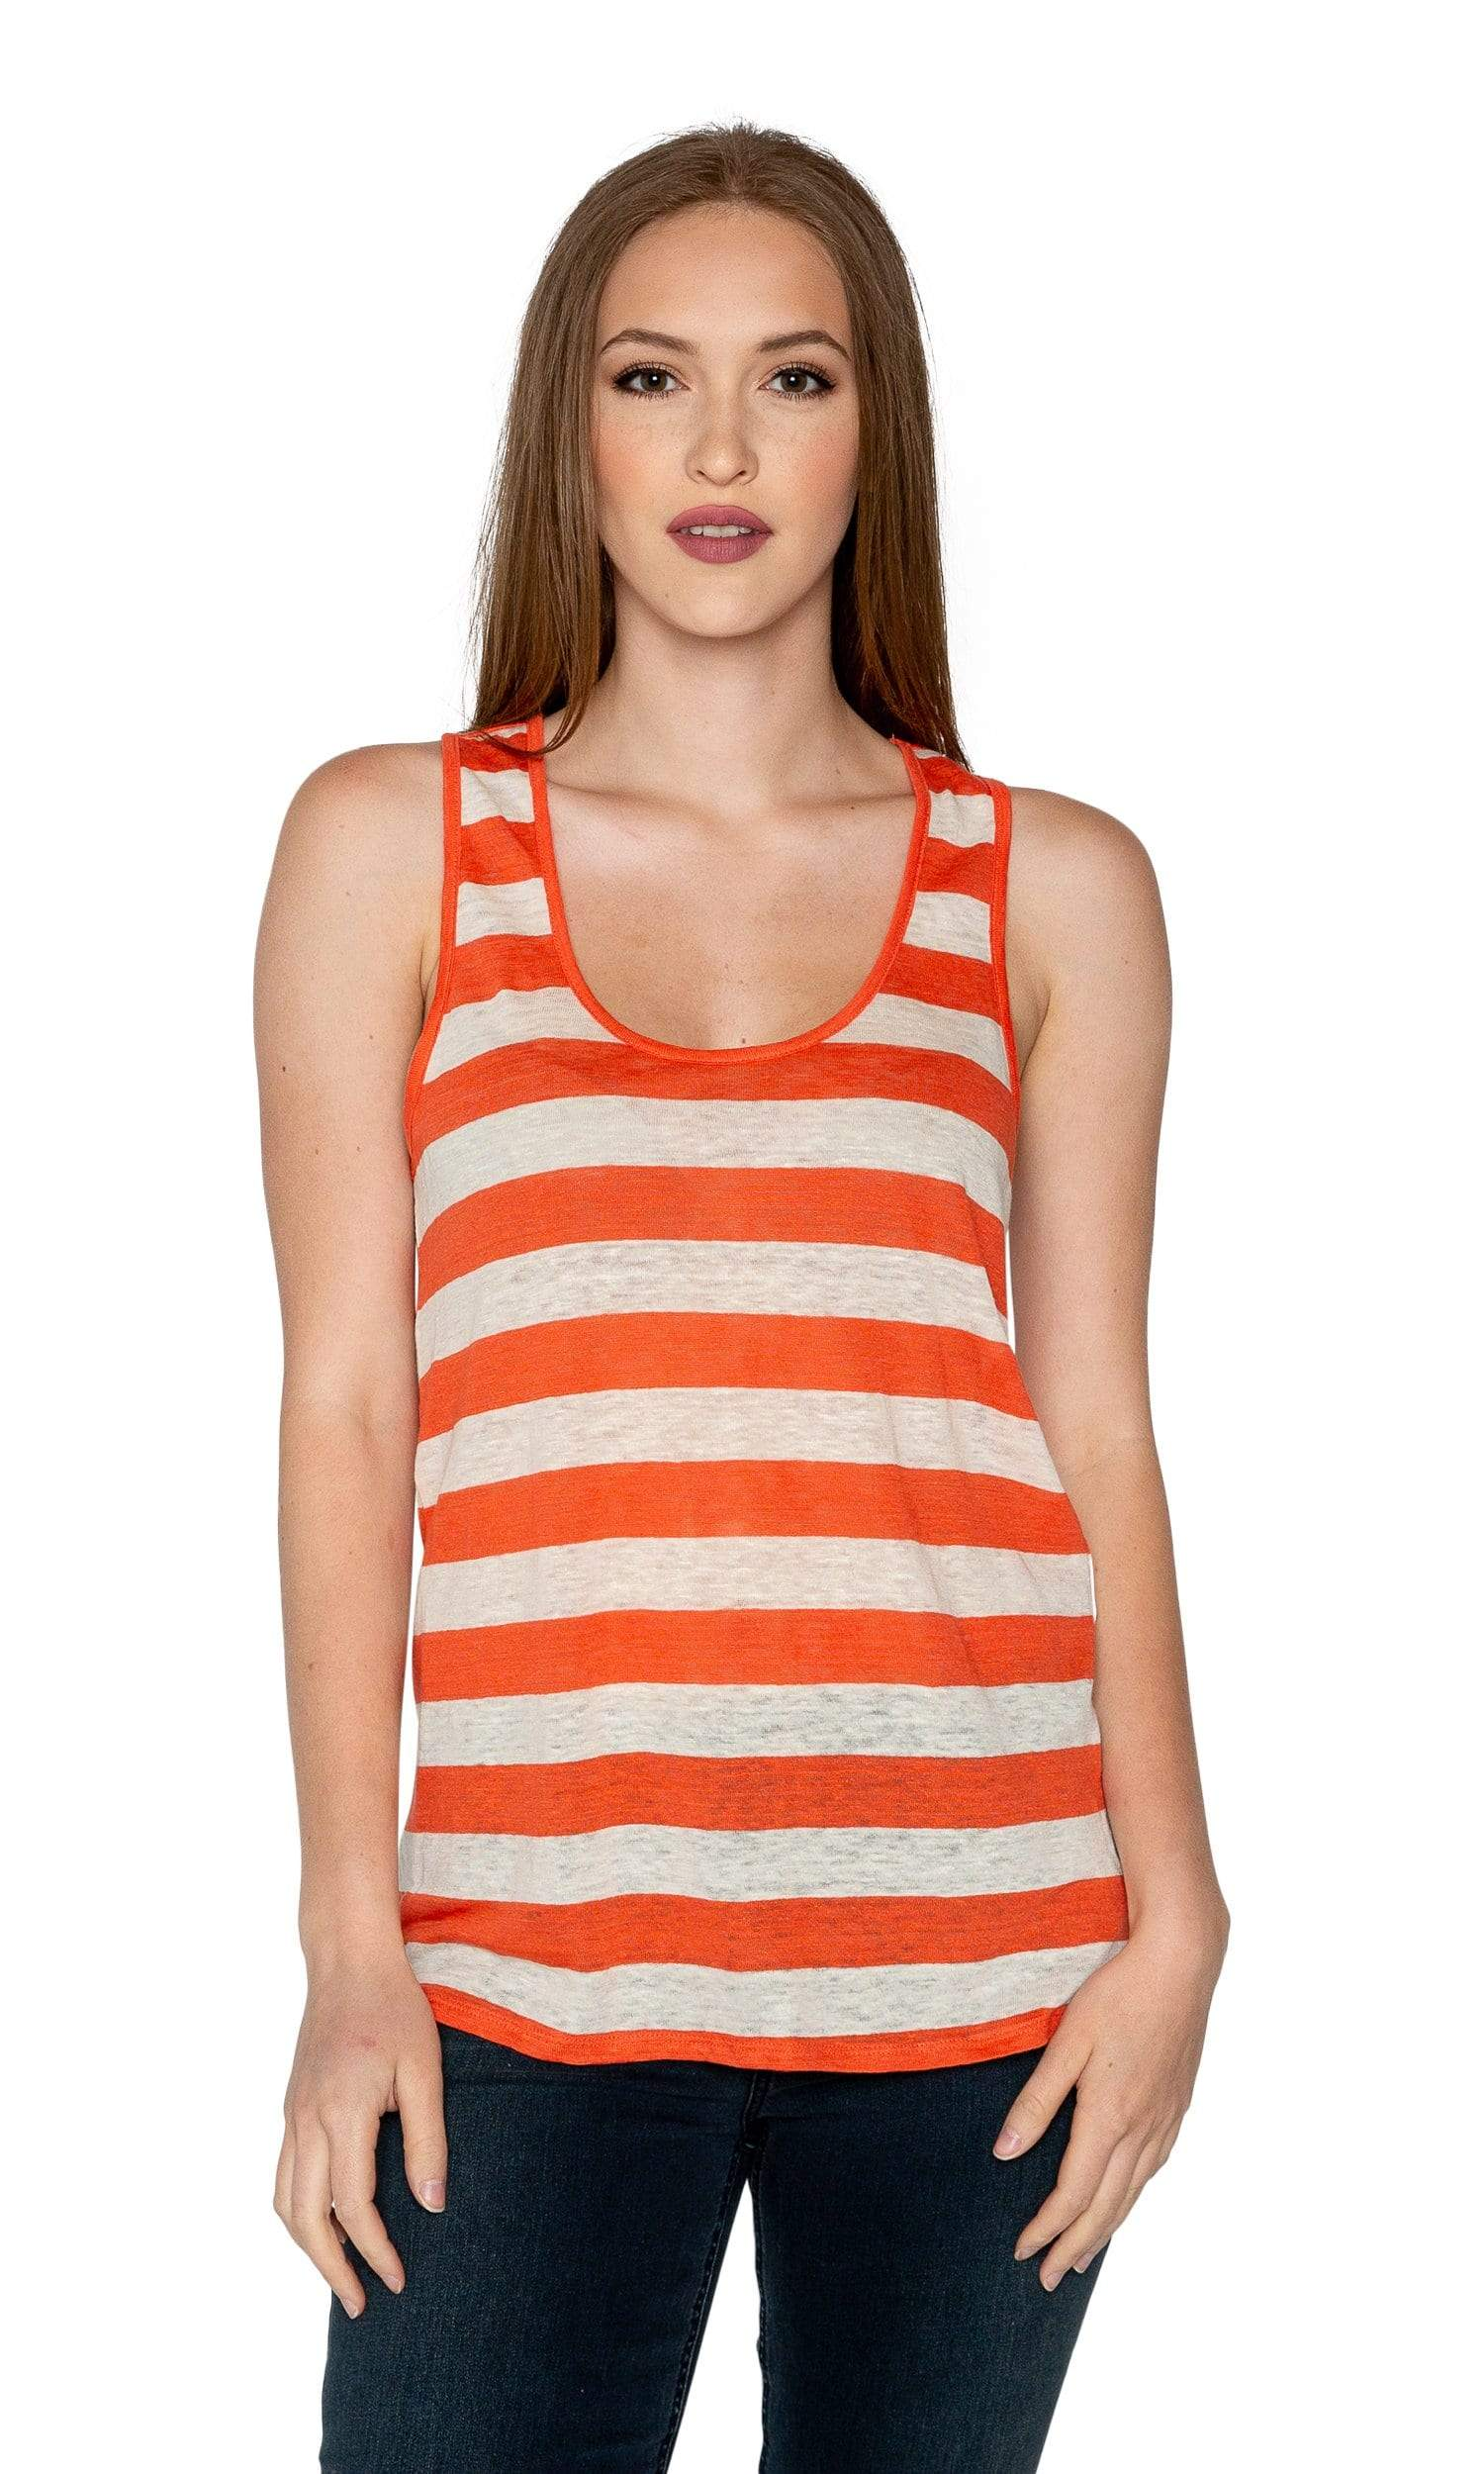 Velvet by Graham & Spencer Shoshana Striped Tank Top